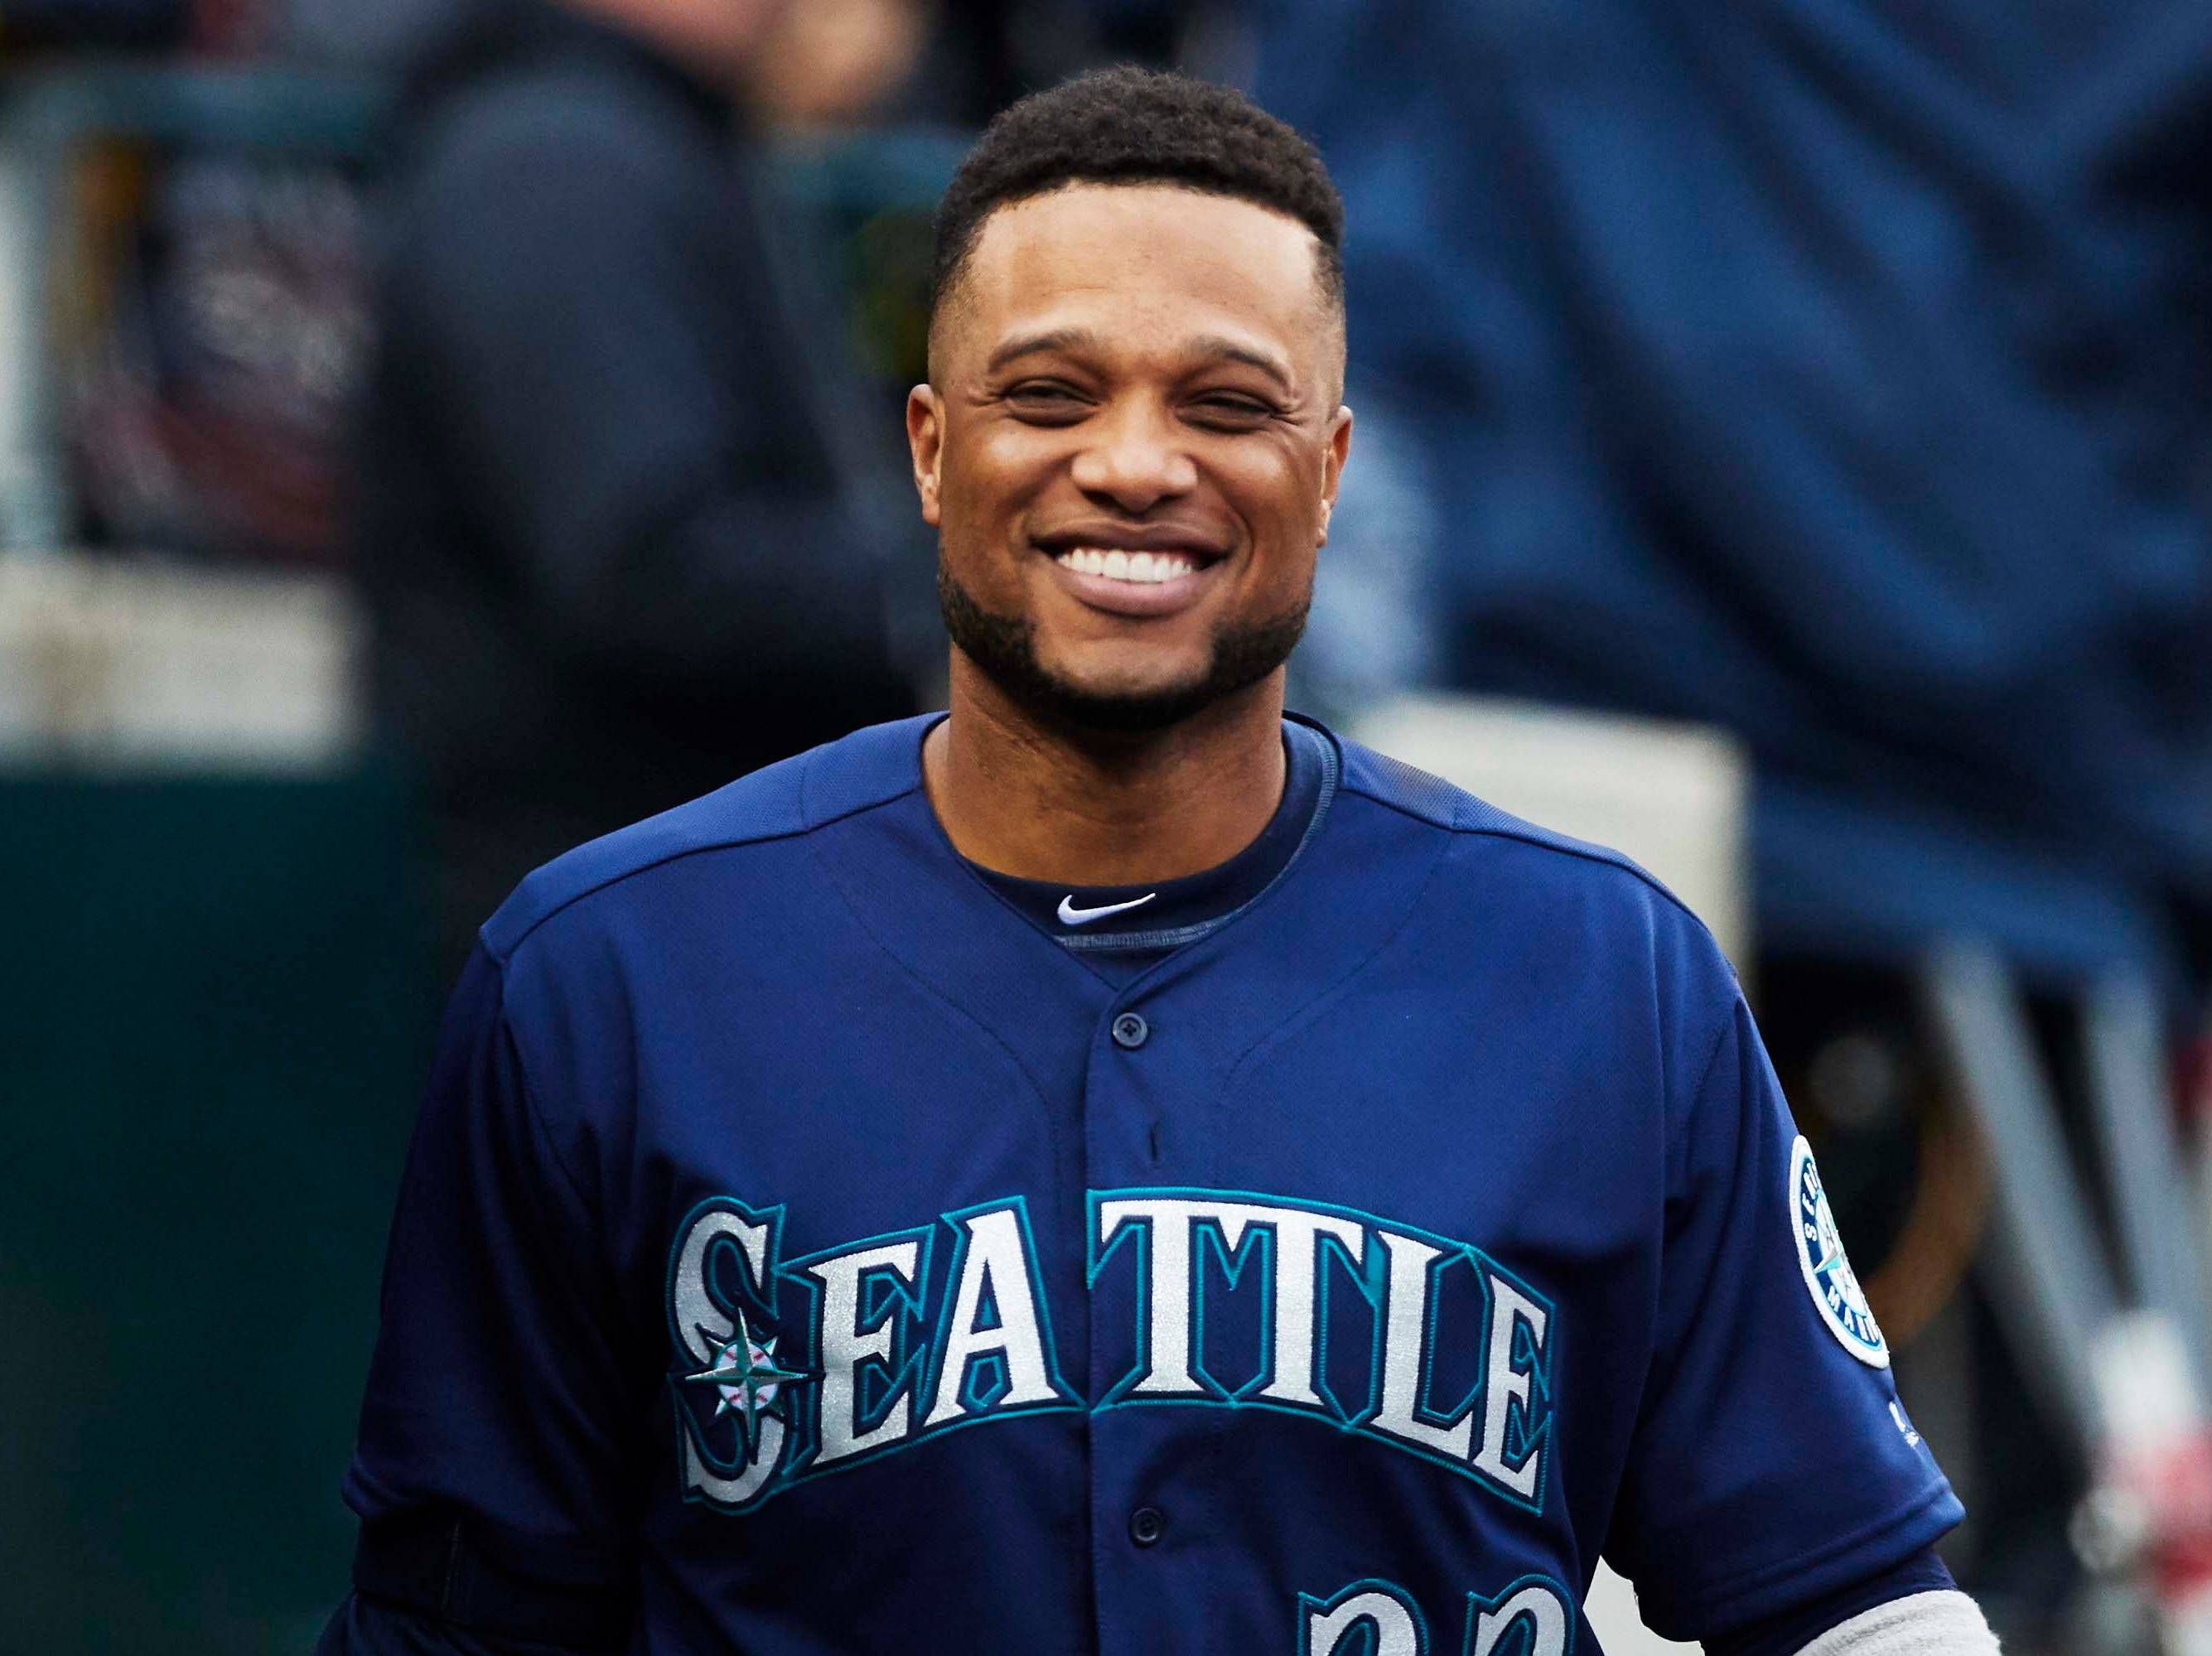 $240 million: Robinson Cano, Mariners (2014-2023)